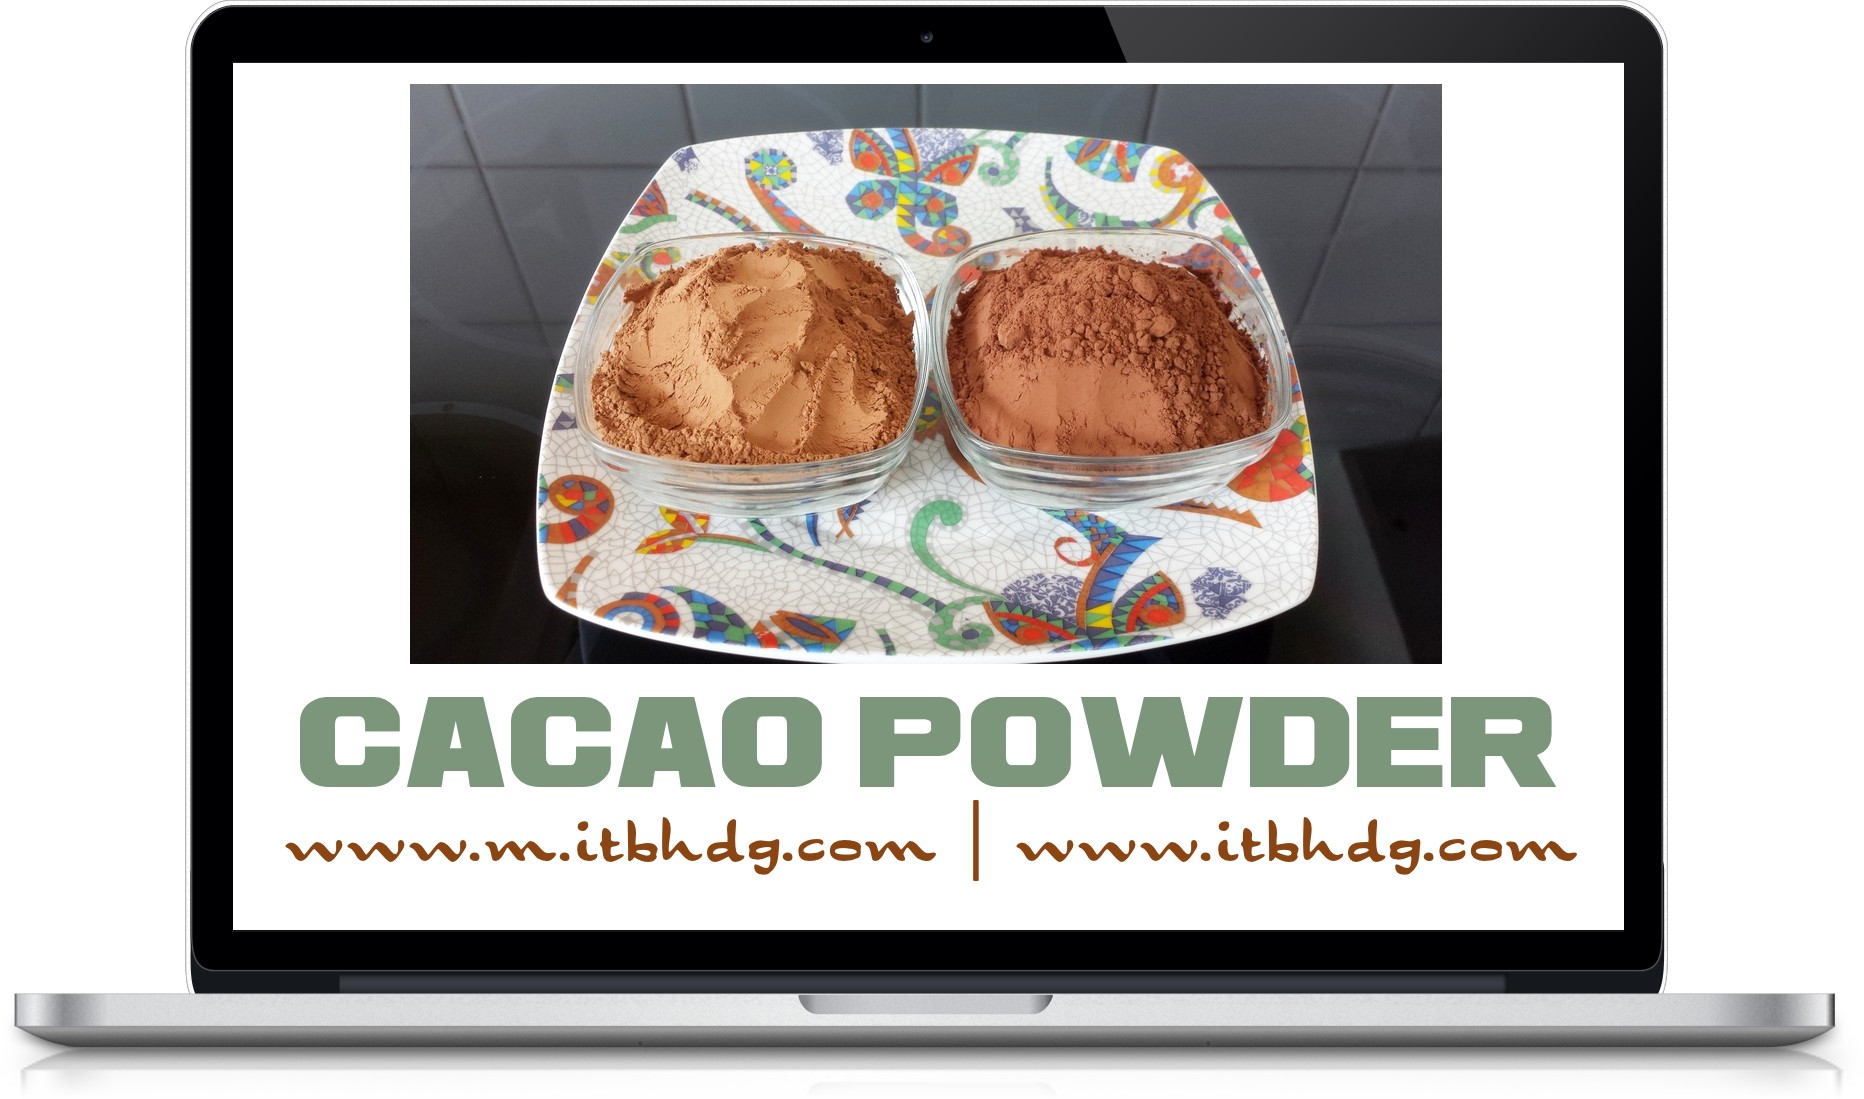 Best CIF (Cost, Insurance, Freight) prices for Cacao Powder | Wholesale @ ITB HOLDINGS LLC | Shop Now, Save Time and Money | www.m.itbhdg.com